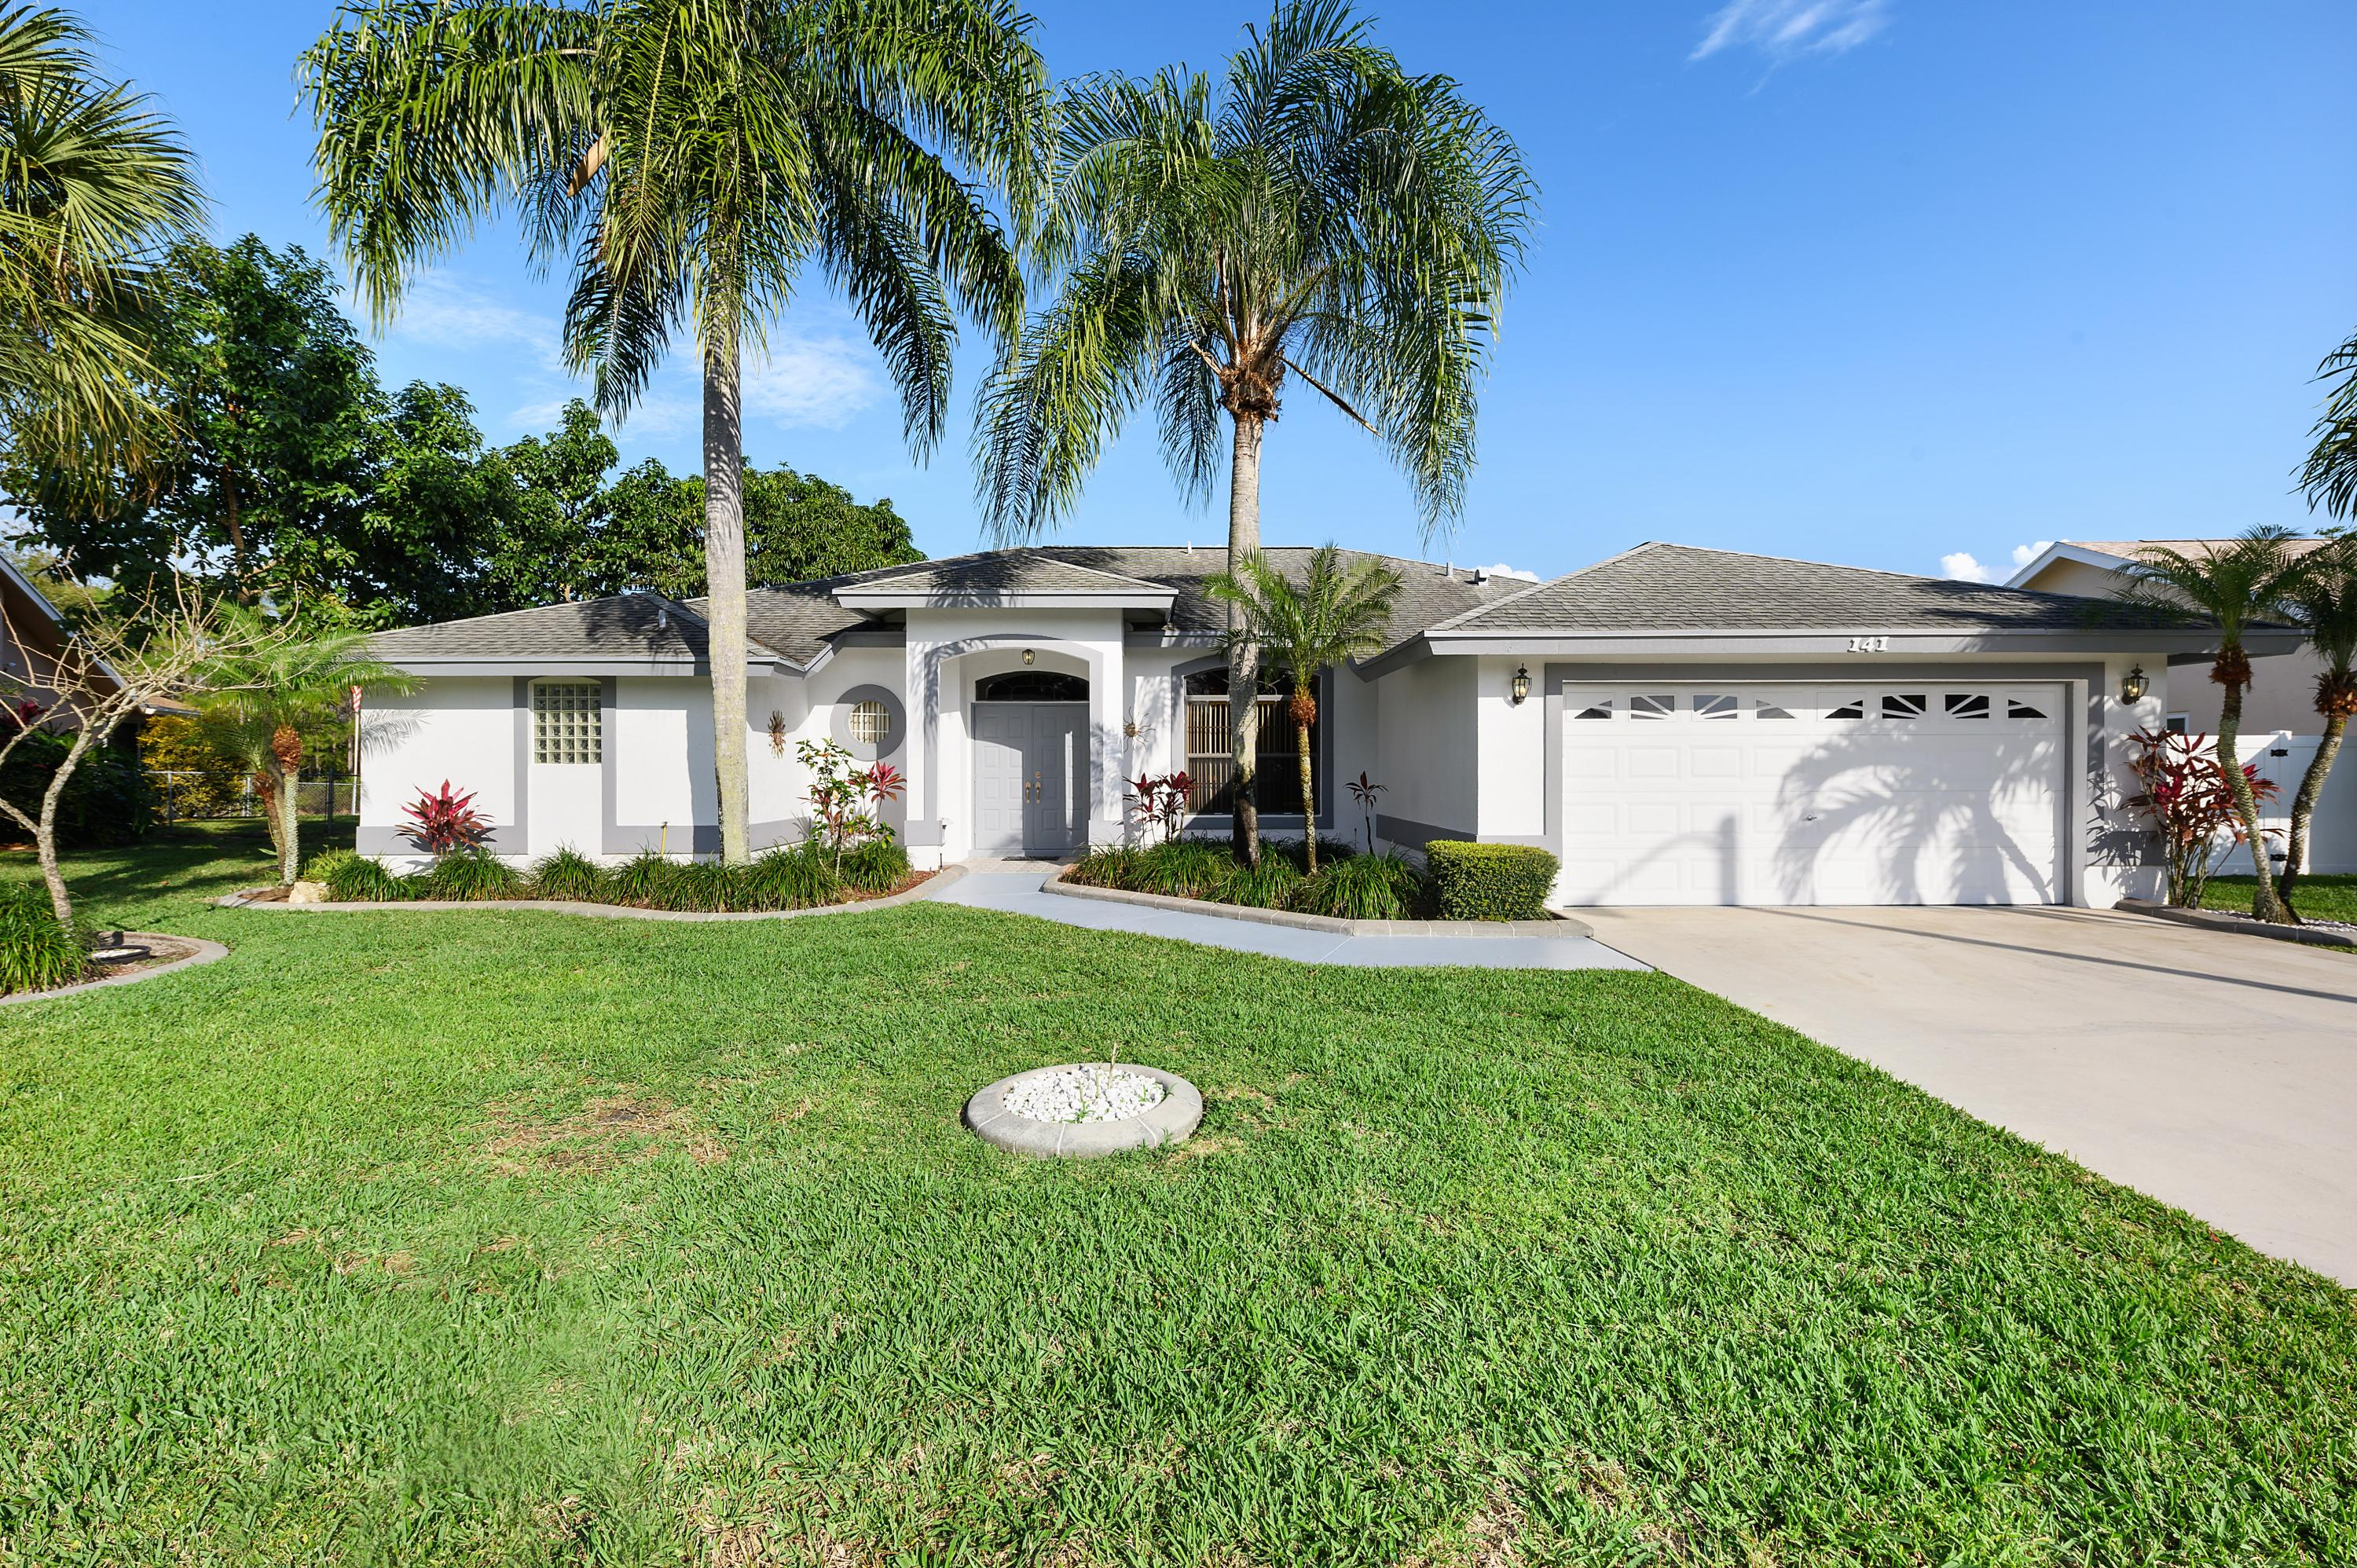 Home for sale in Crestwood Royal Palm Beach Florida